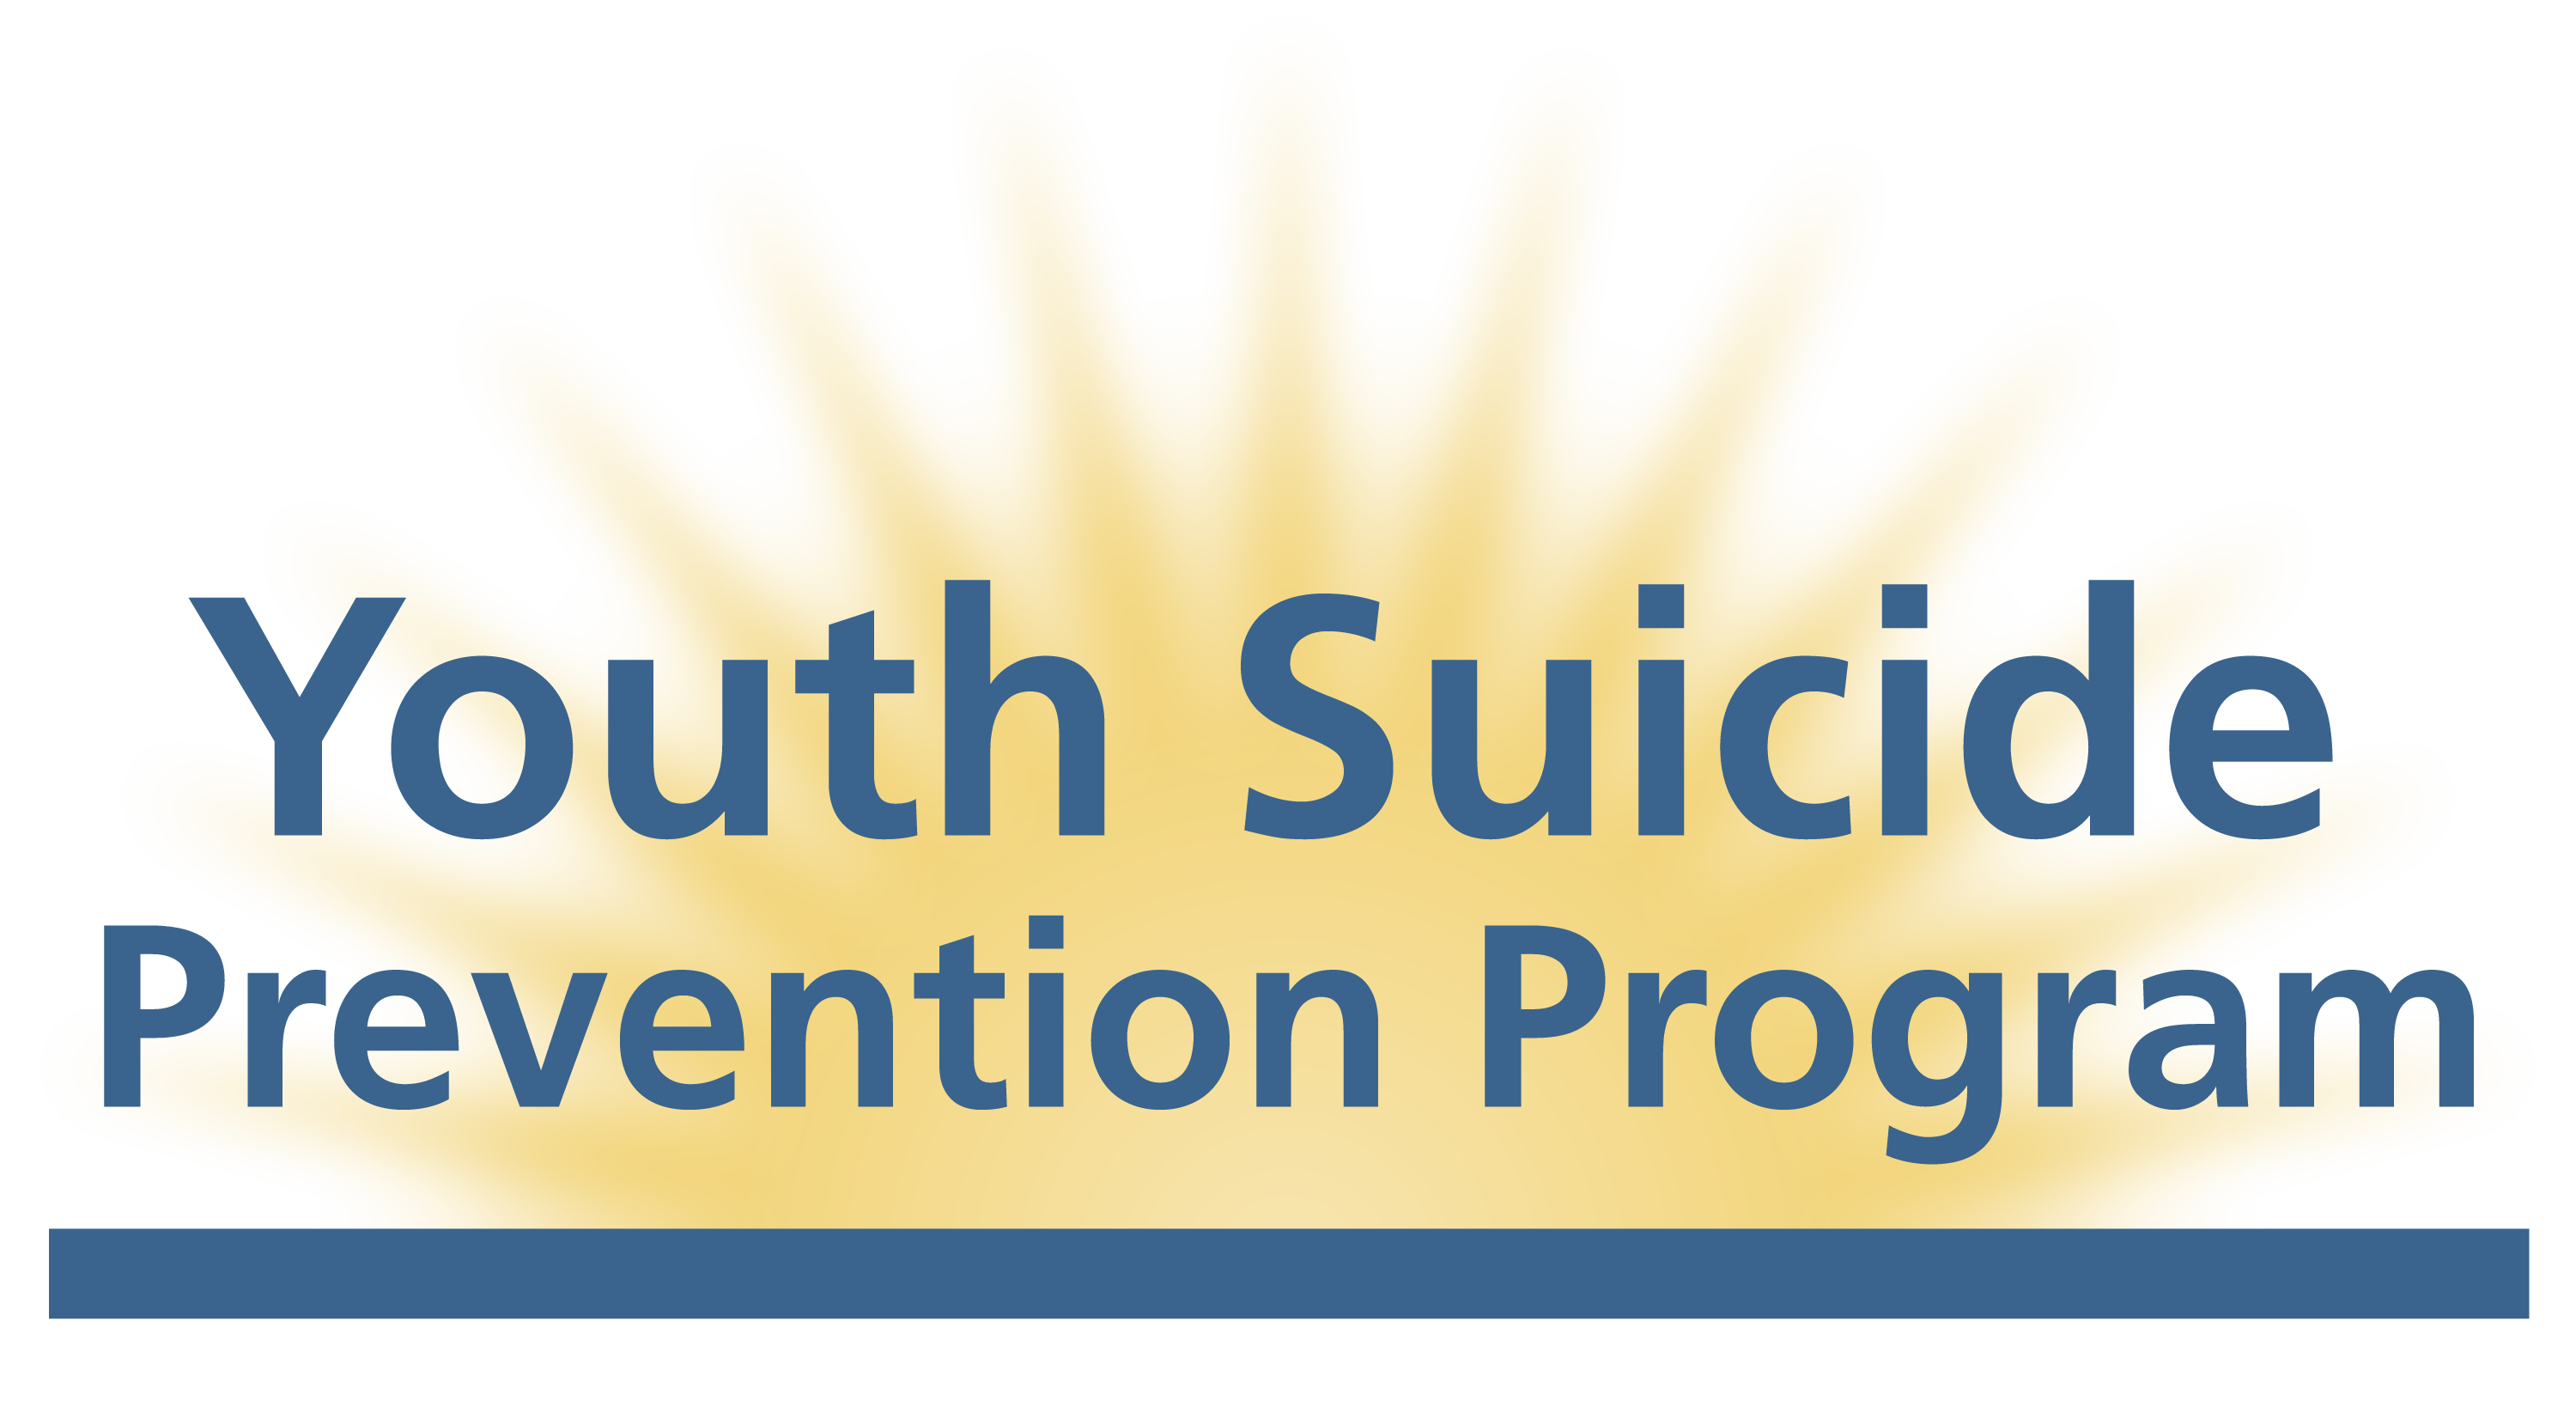 an analysis of the suicide prevention Suicide is one of the leading causes of death among young people globally in light of emerging evidence supporting the effectiveness of school-based suicide prevention programmes, an analysis of.